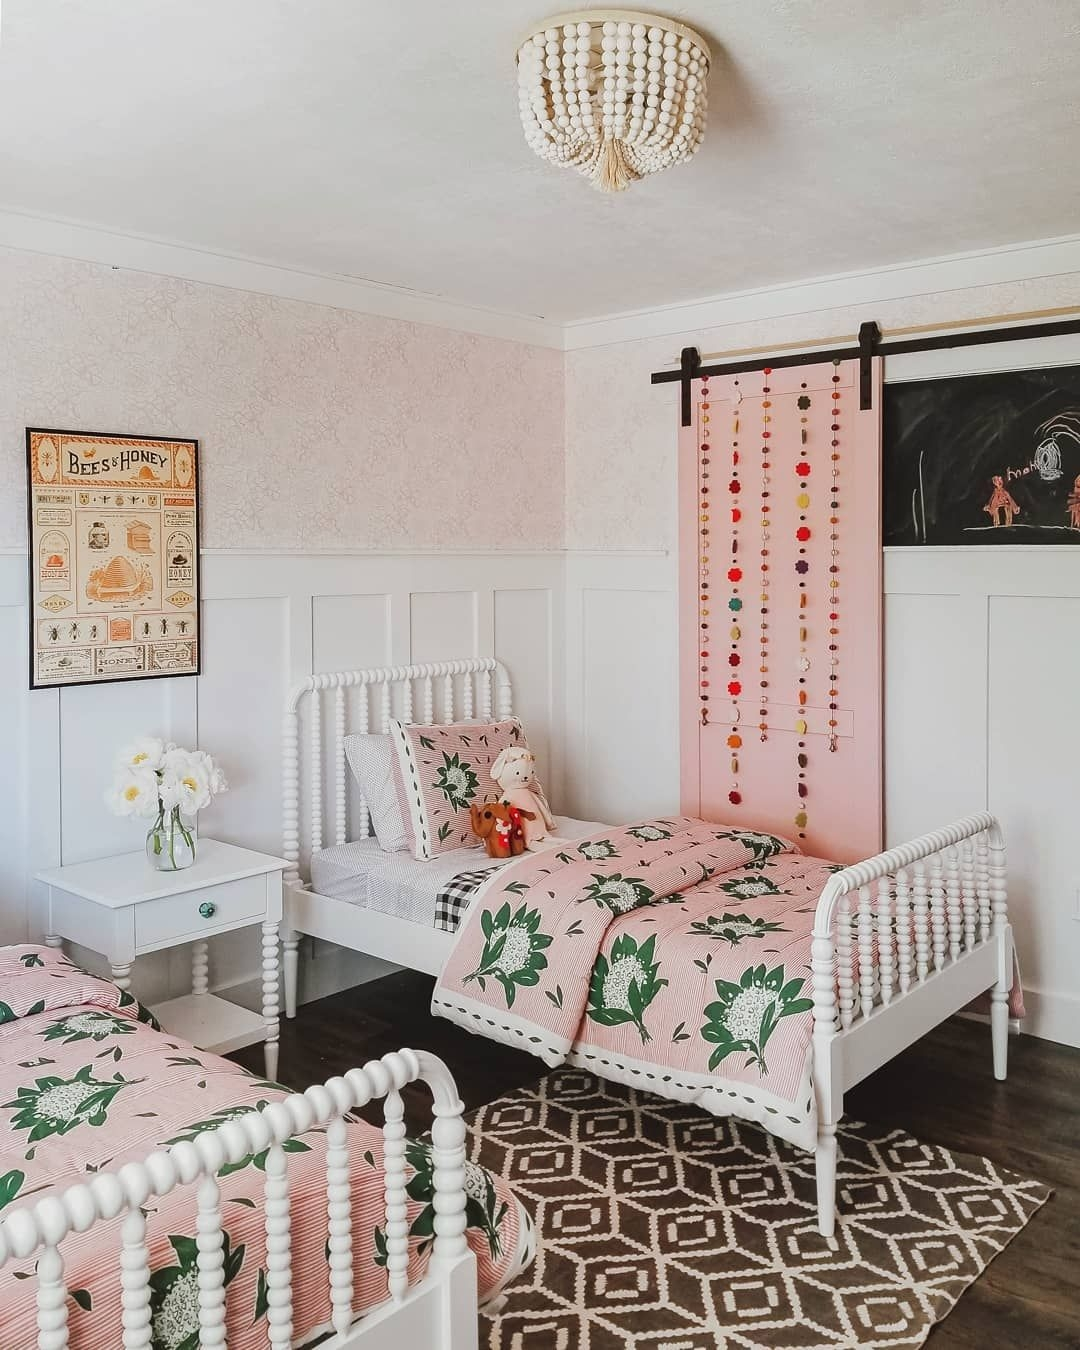 Fanciable Boho Farmhouse Bedding On Magnificent Our Little Boho Beehive Room is Slowly but Surely Ing On Boho Farmhouse Bedding